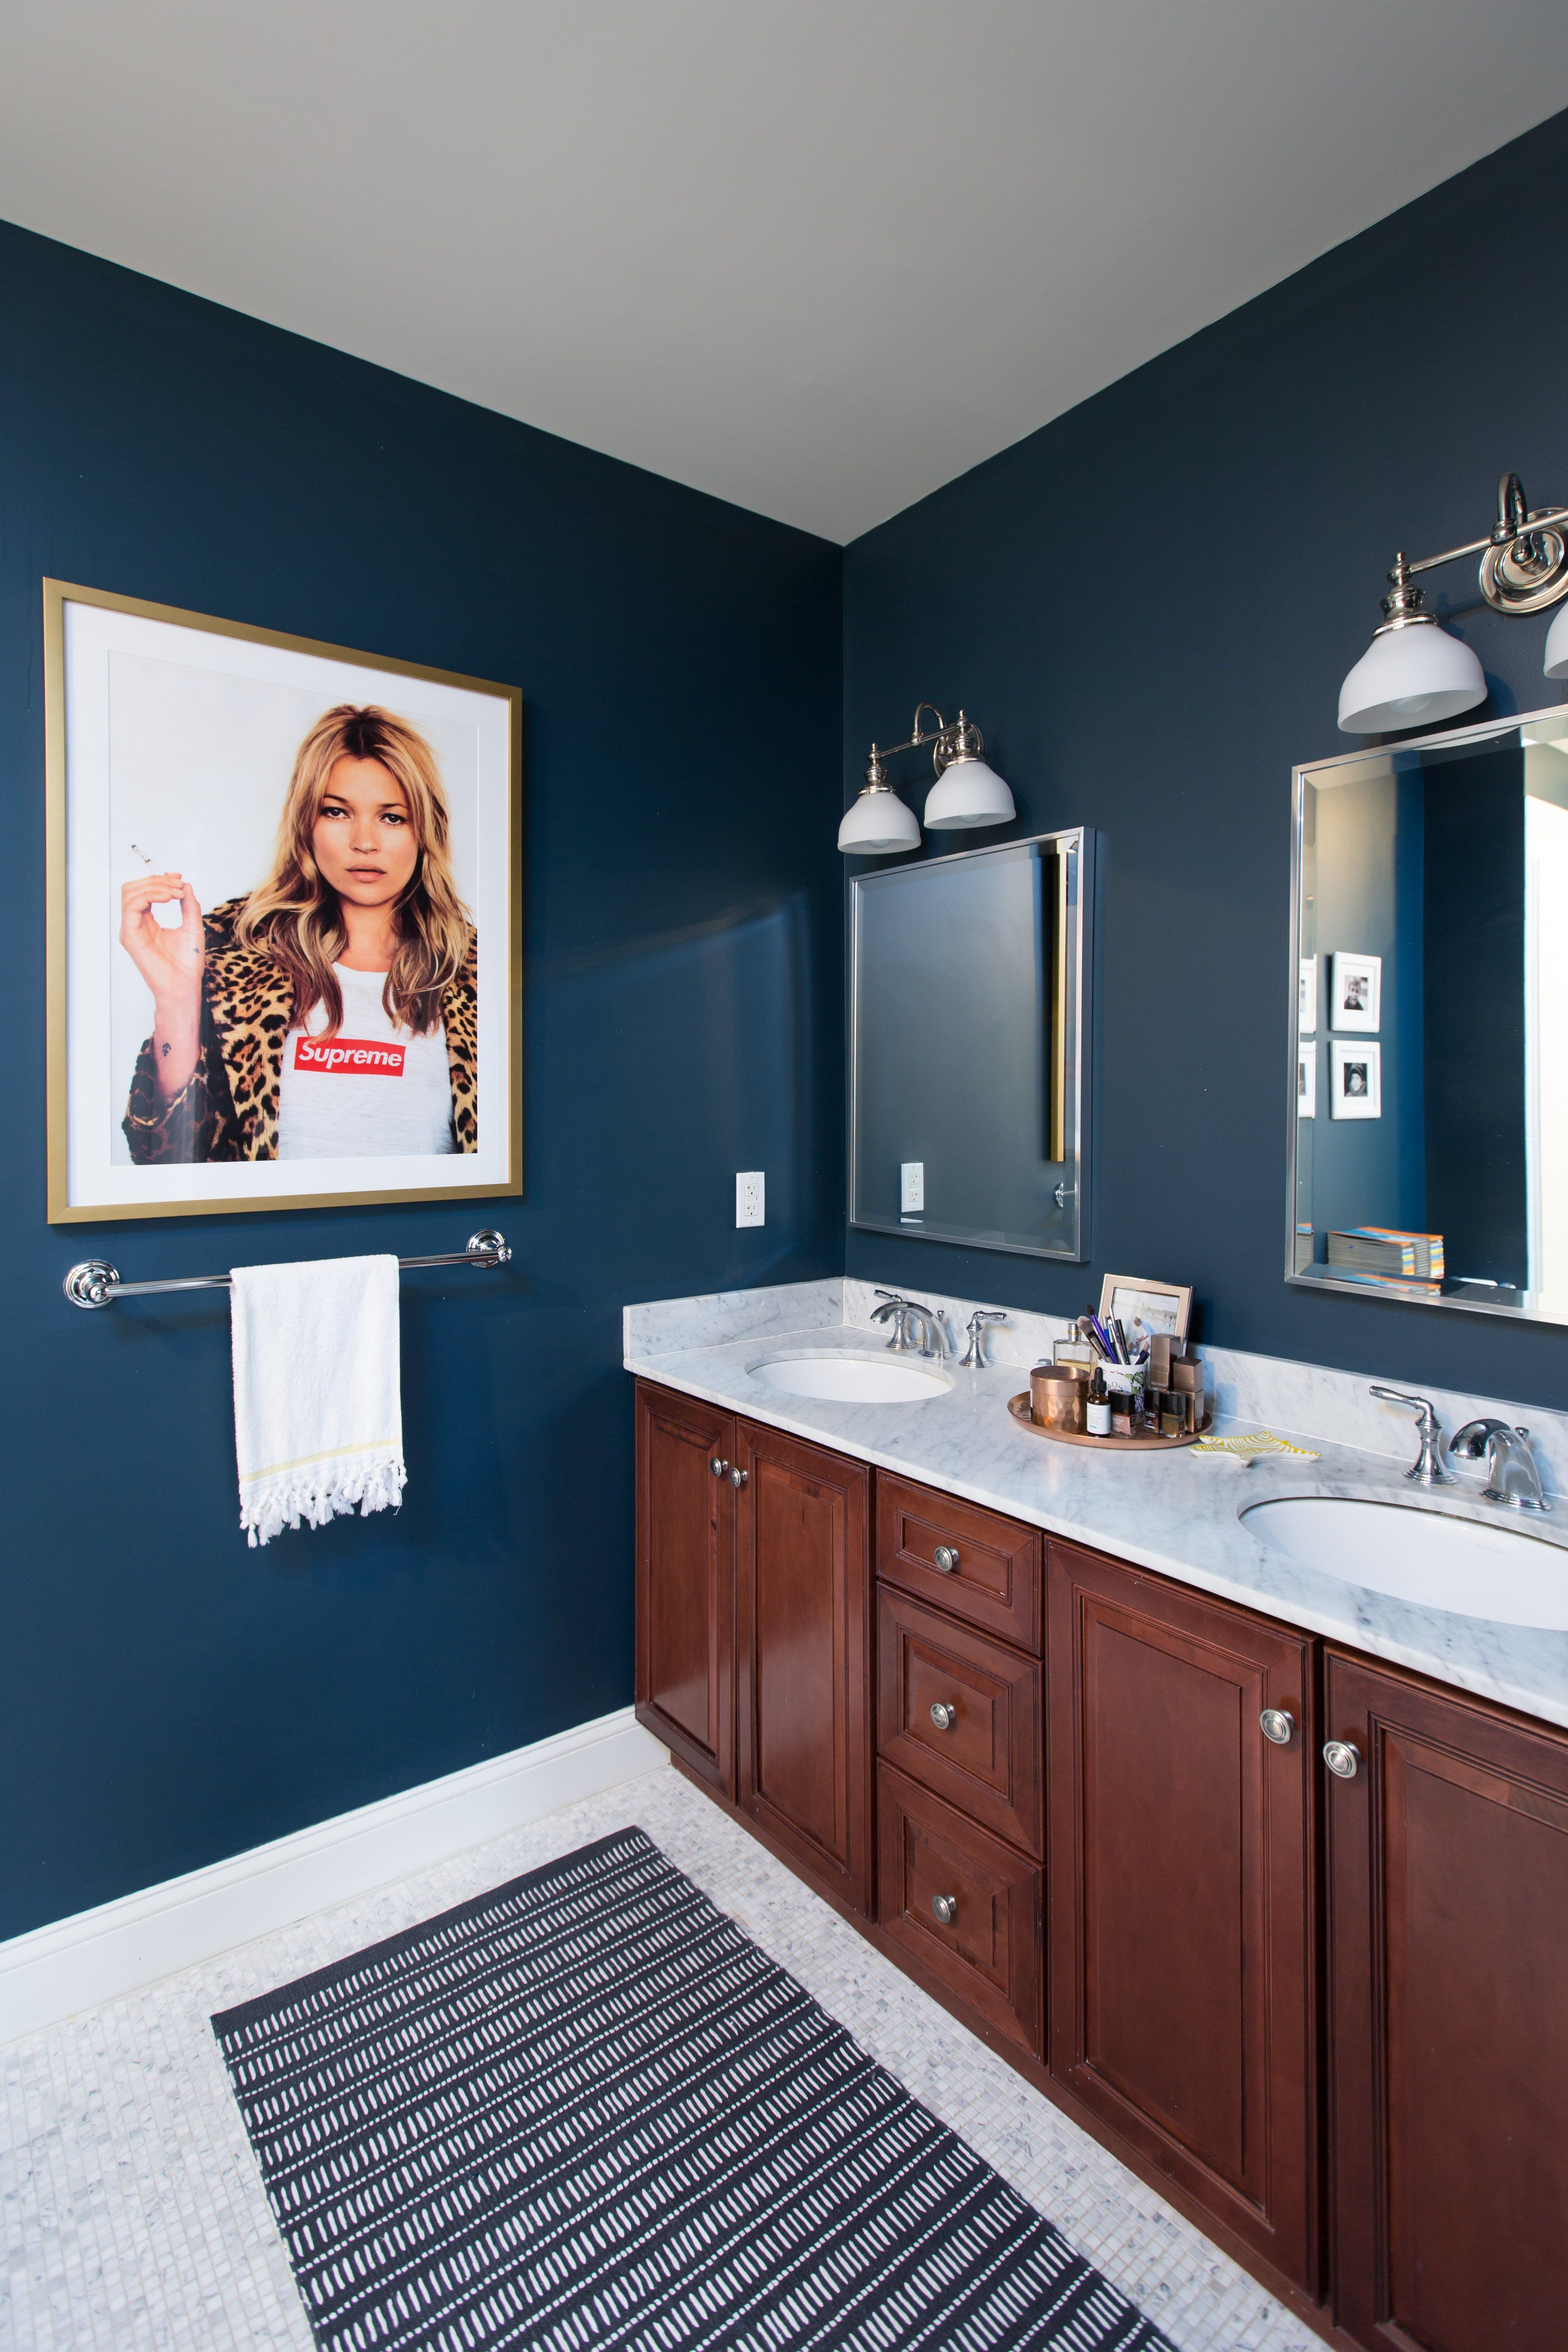 apartment therapy bathroom colors. paint colors that match this apartment therapy photo: sw 6250 granite peak, 2801 bathroom